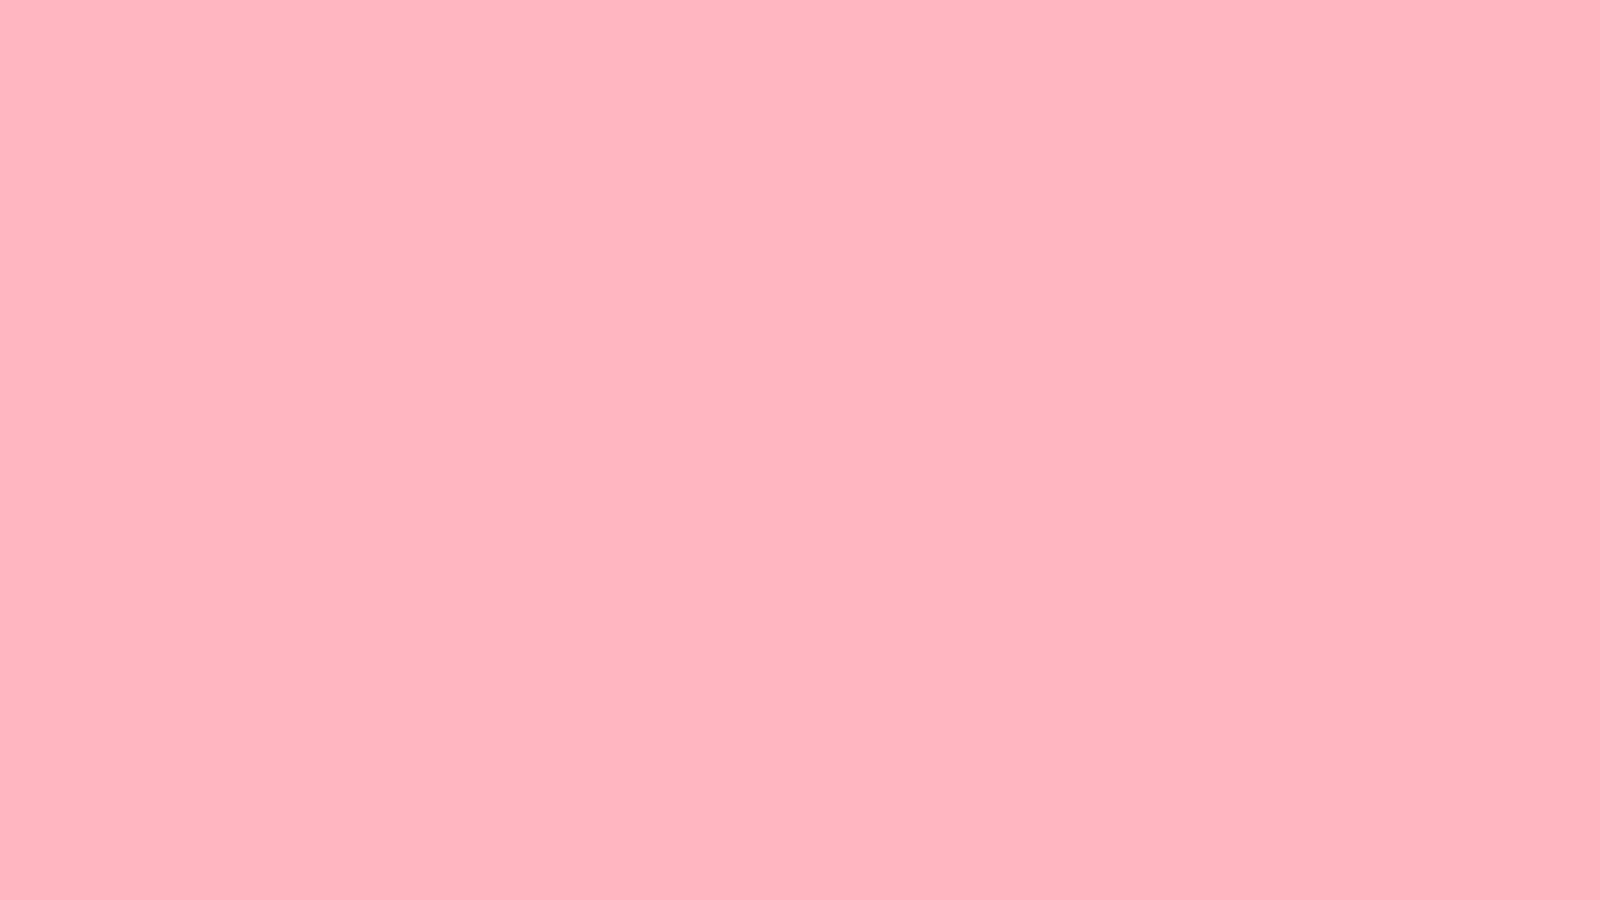 1600x900 Light Pink Solid Color Background